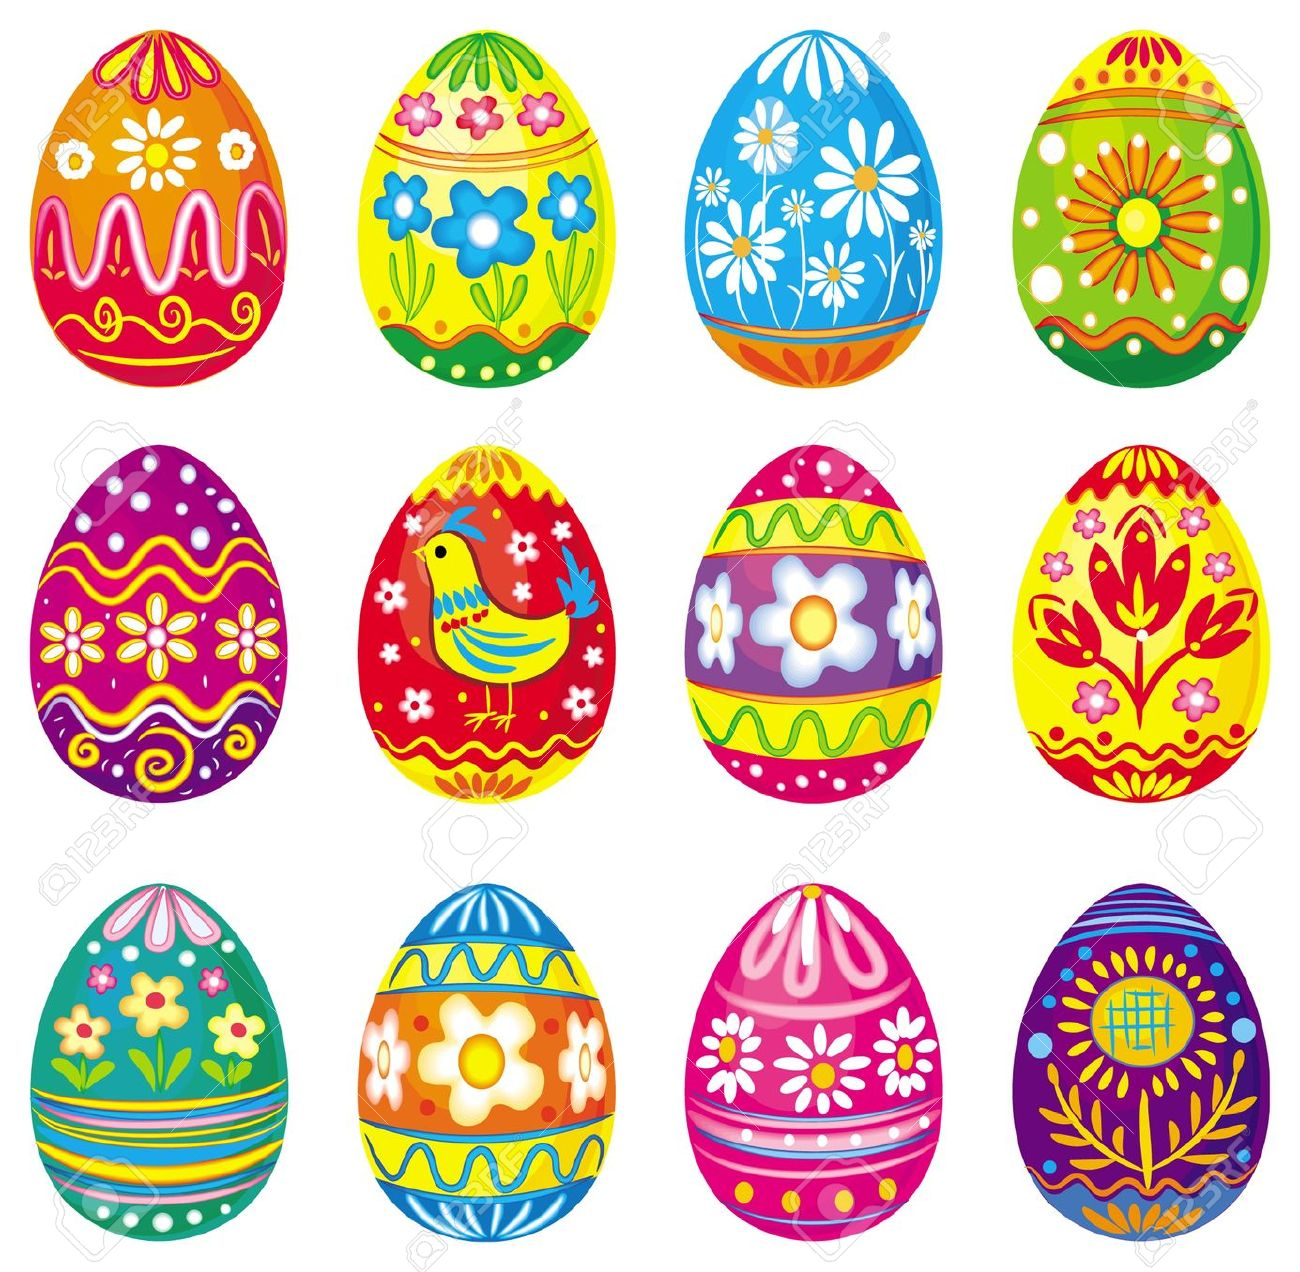 Decorations happy images quotes. 2018 clipart easter egg